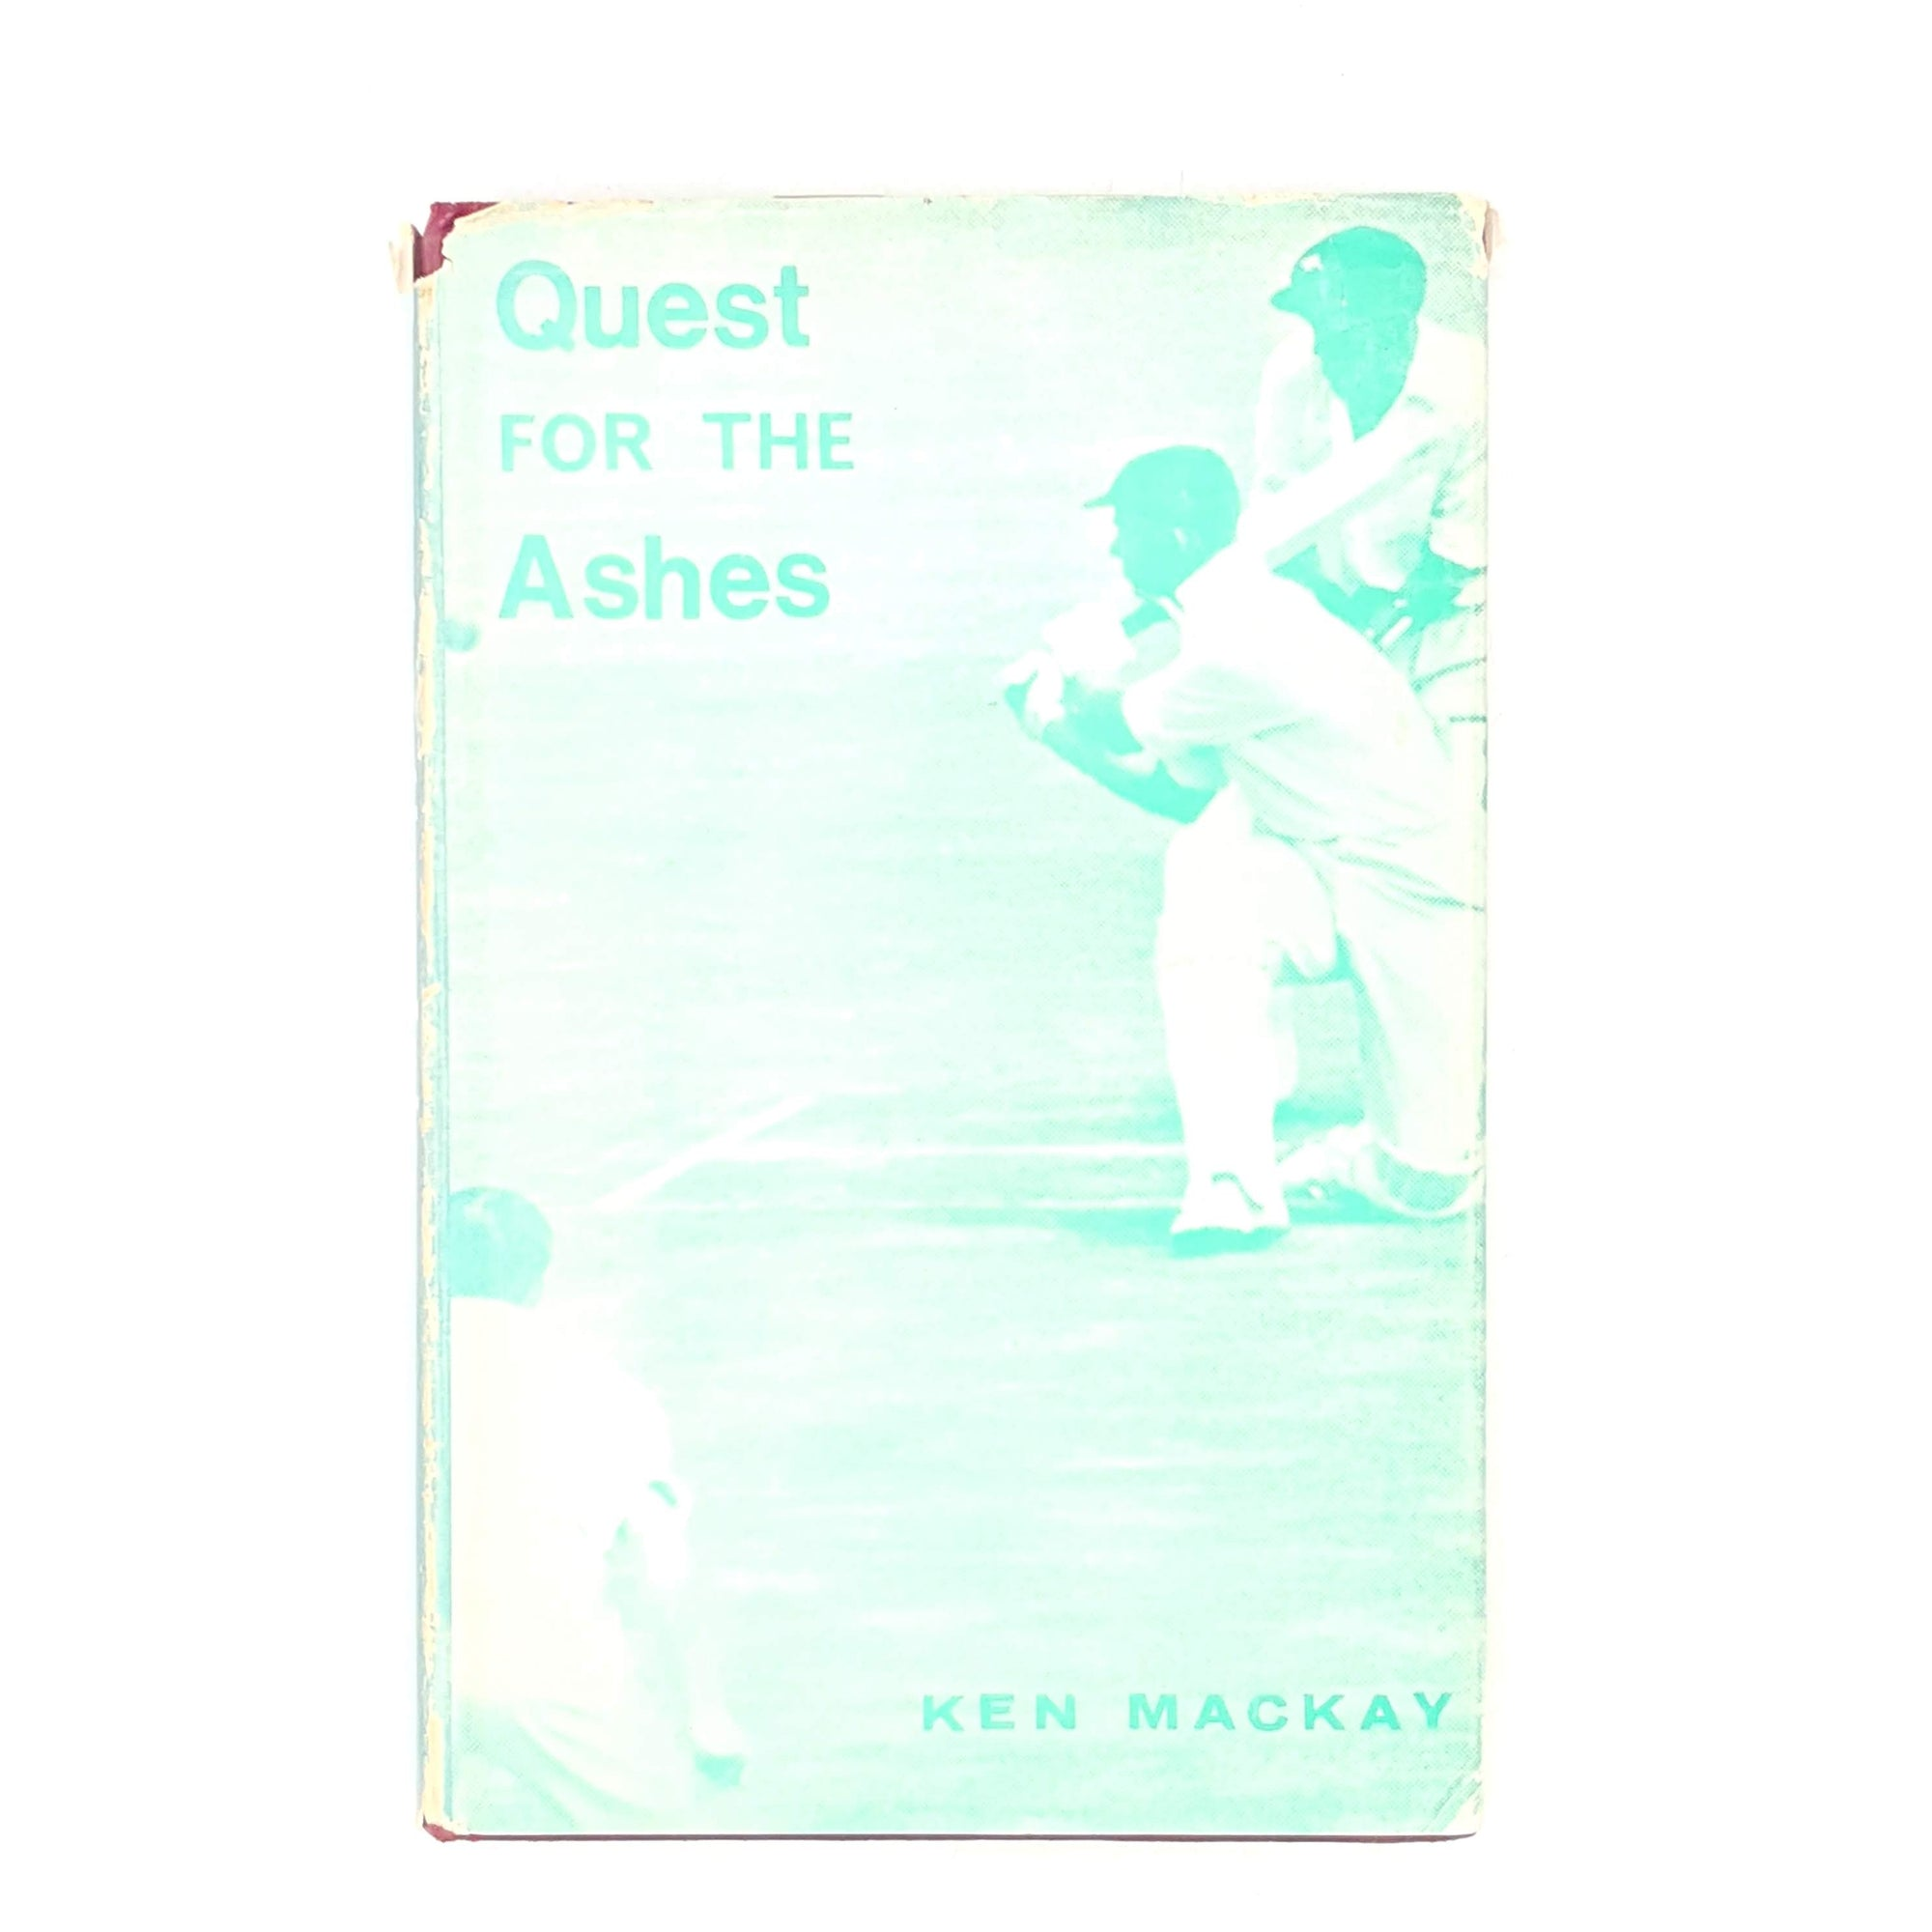 Quest for the Ashes by Ken Mackay 1967